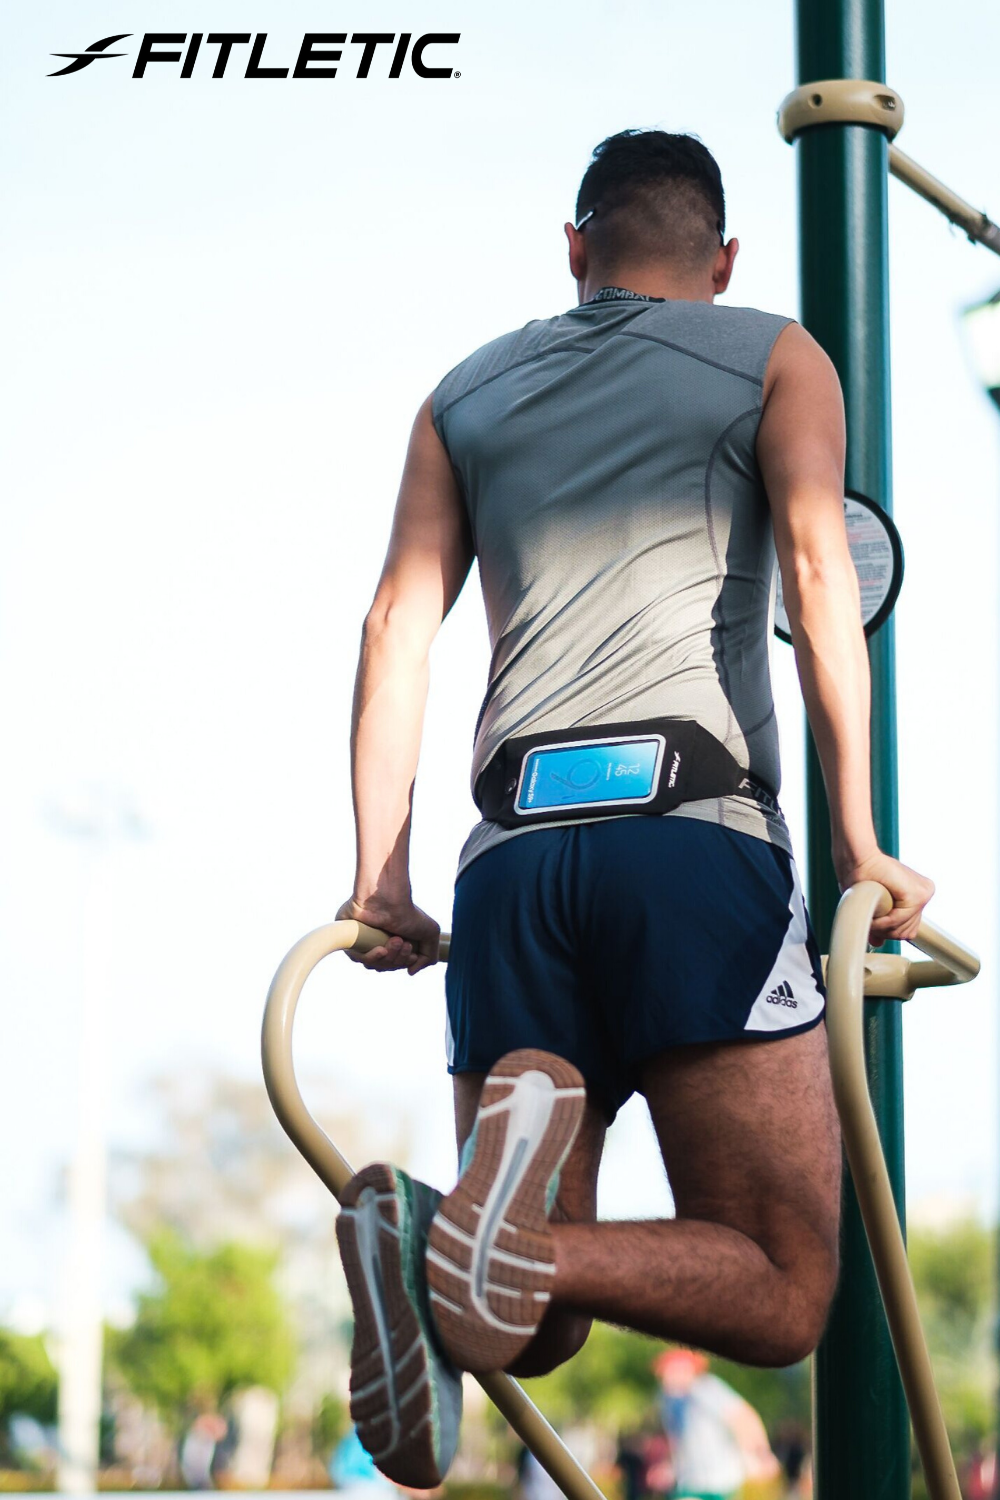 Whether you're boarding a plane or going for a run, this belt has all you need to stay connected and...